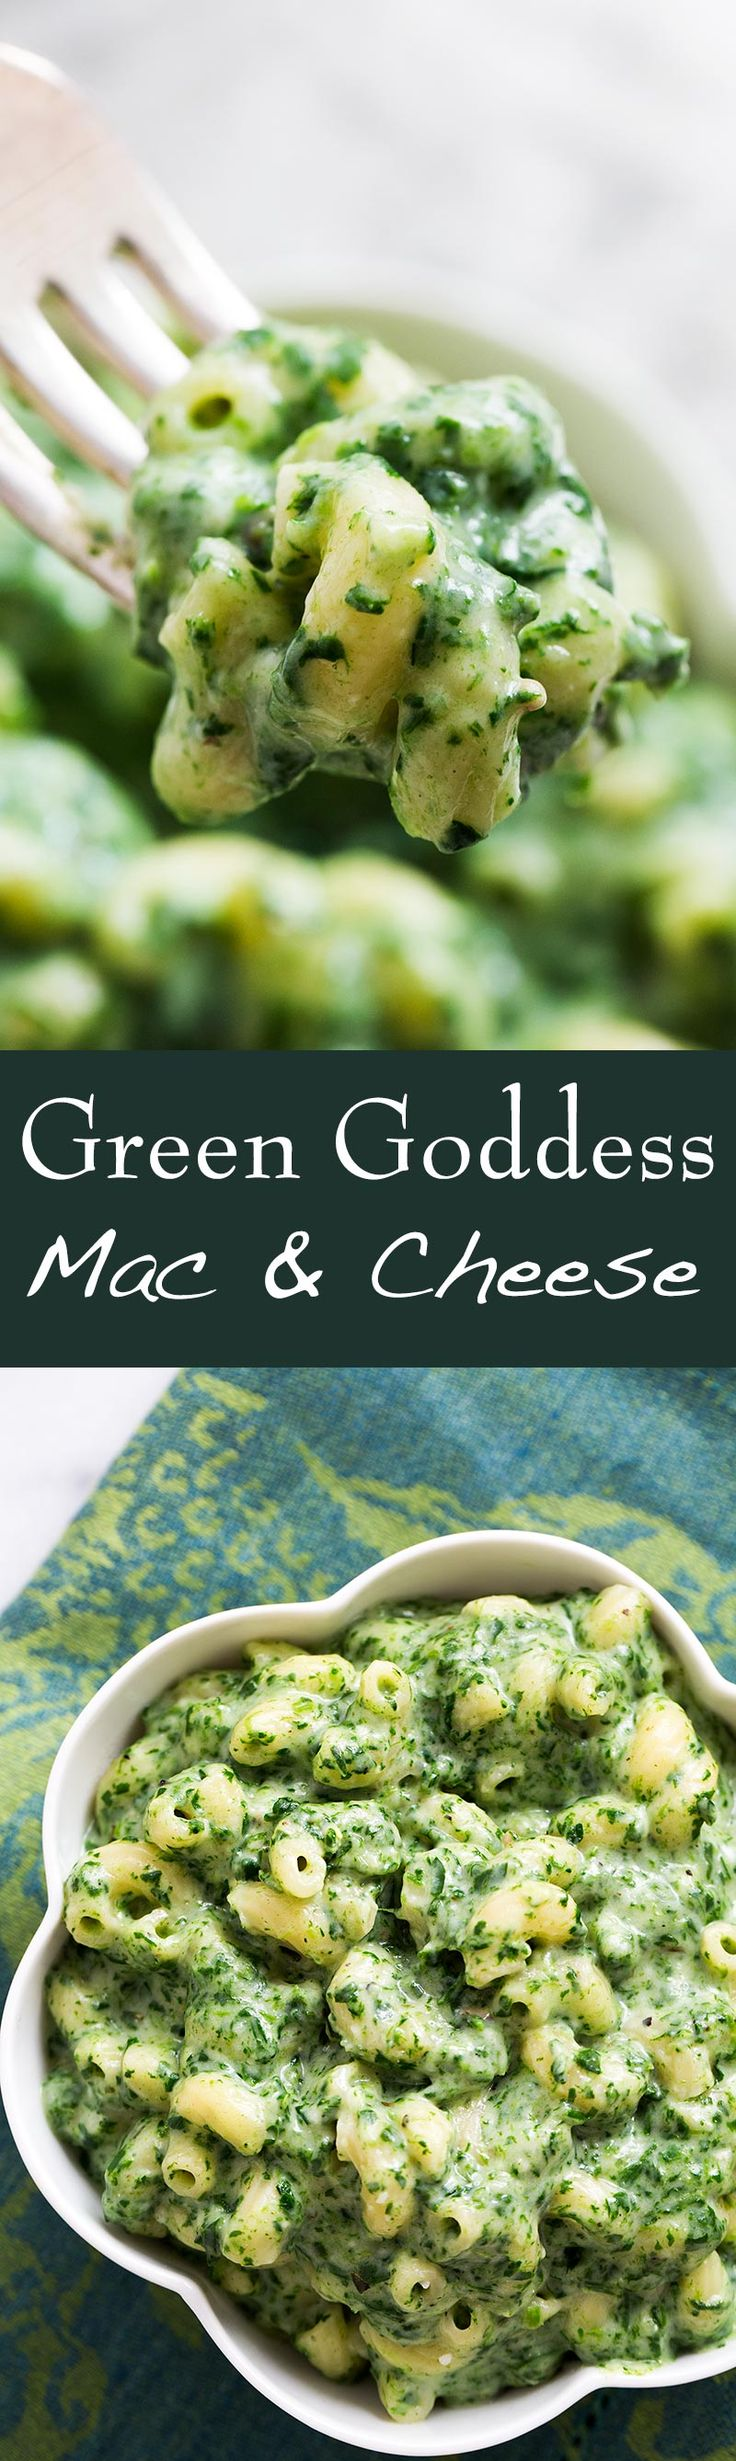 Green Goddess Mac and Cheese ~ Get your power greens in this macaroni cheese! With loads of baby spinach, parsley, garlic, white sharp cheddar, Parmesan, and macaroni pasta. ~ SimplyRecipes.com